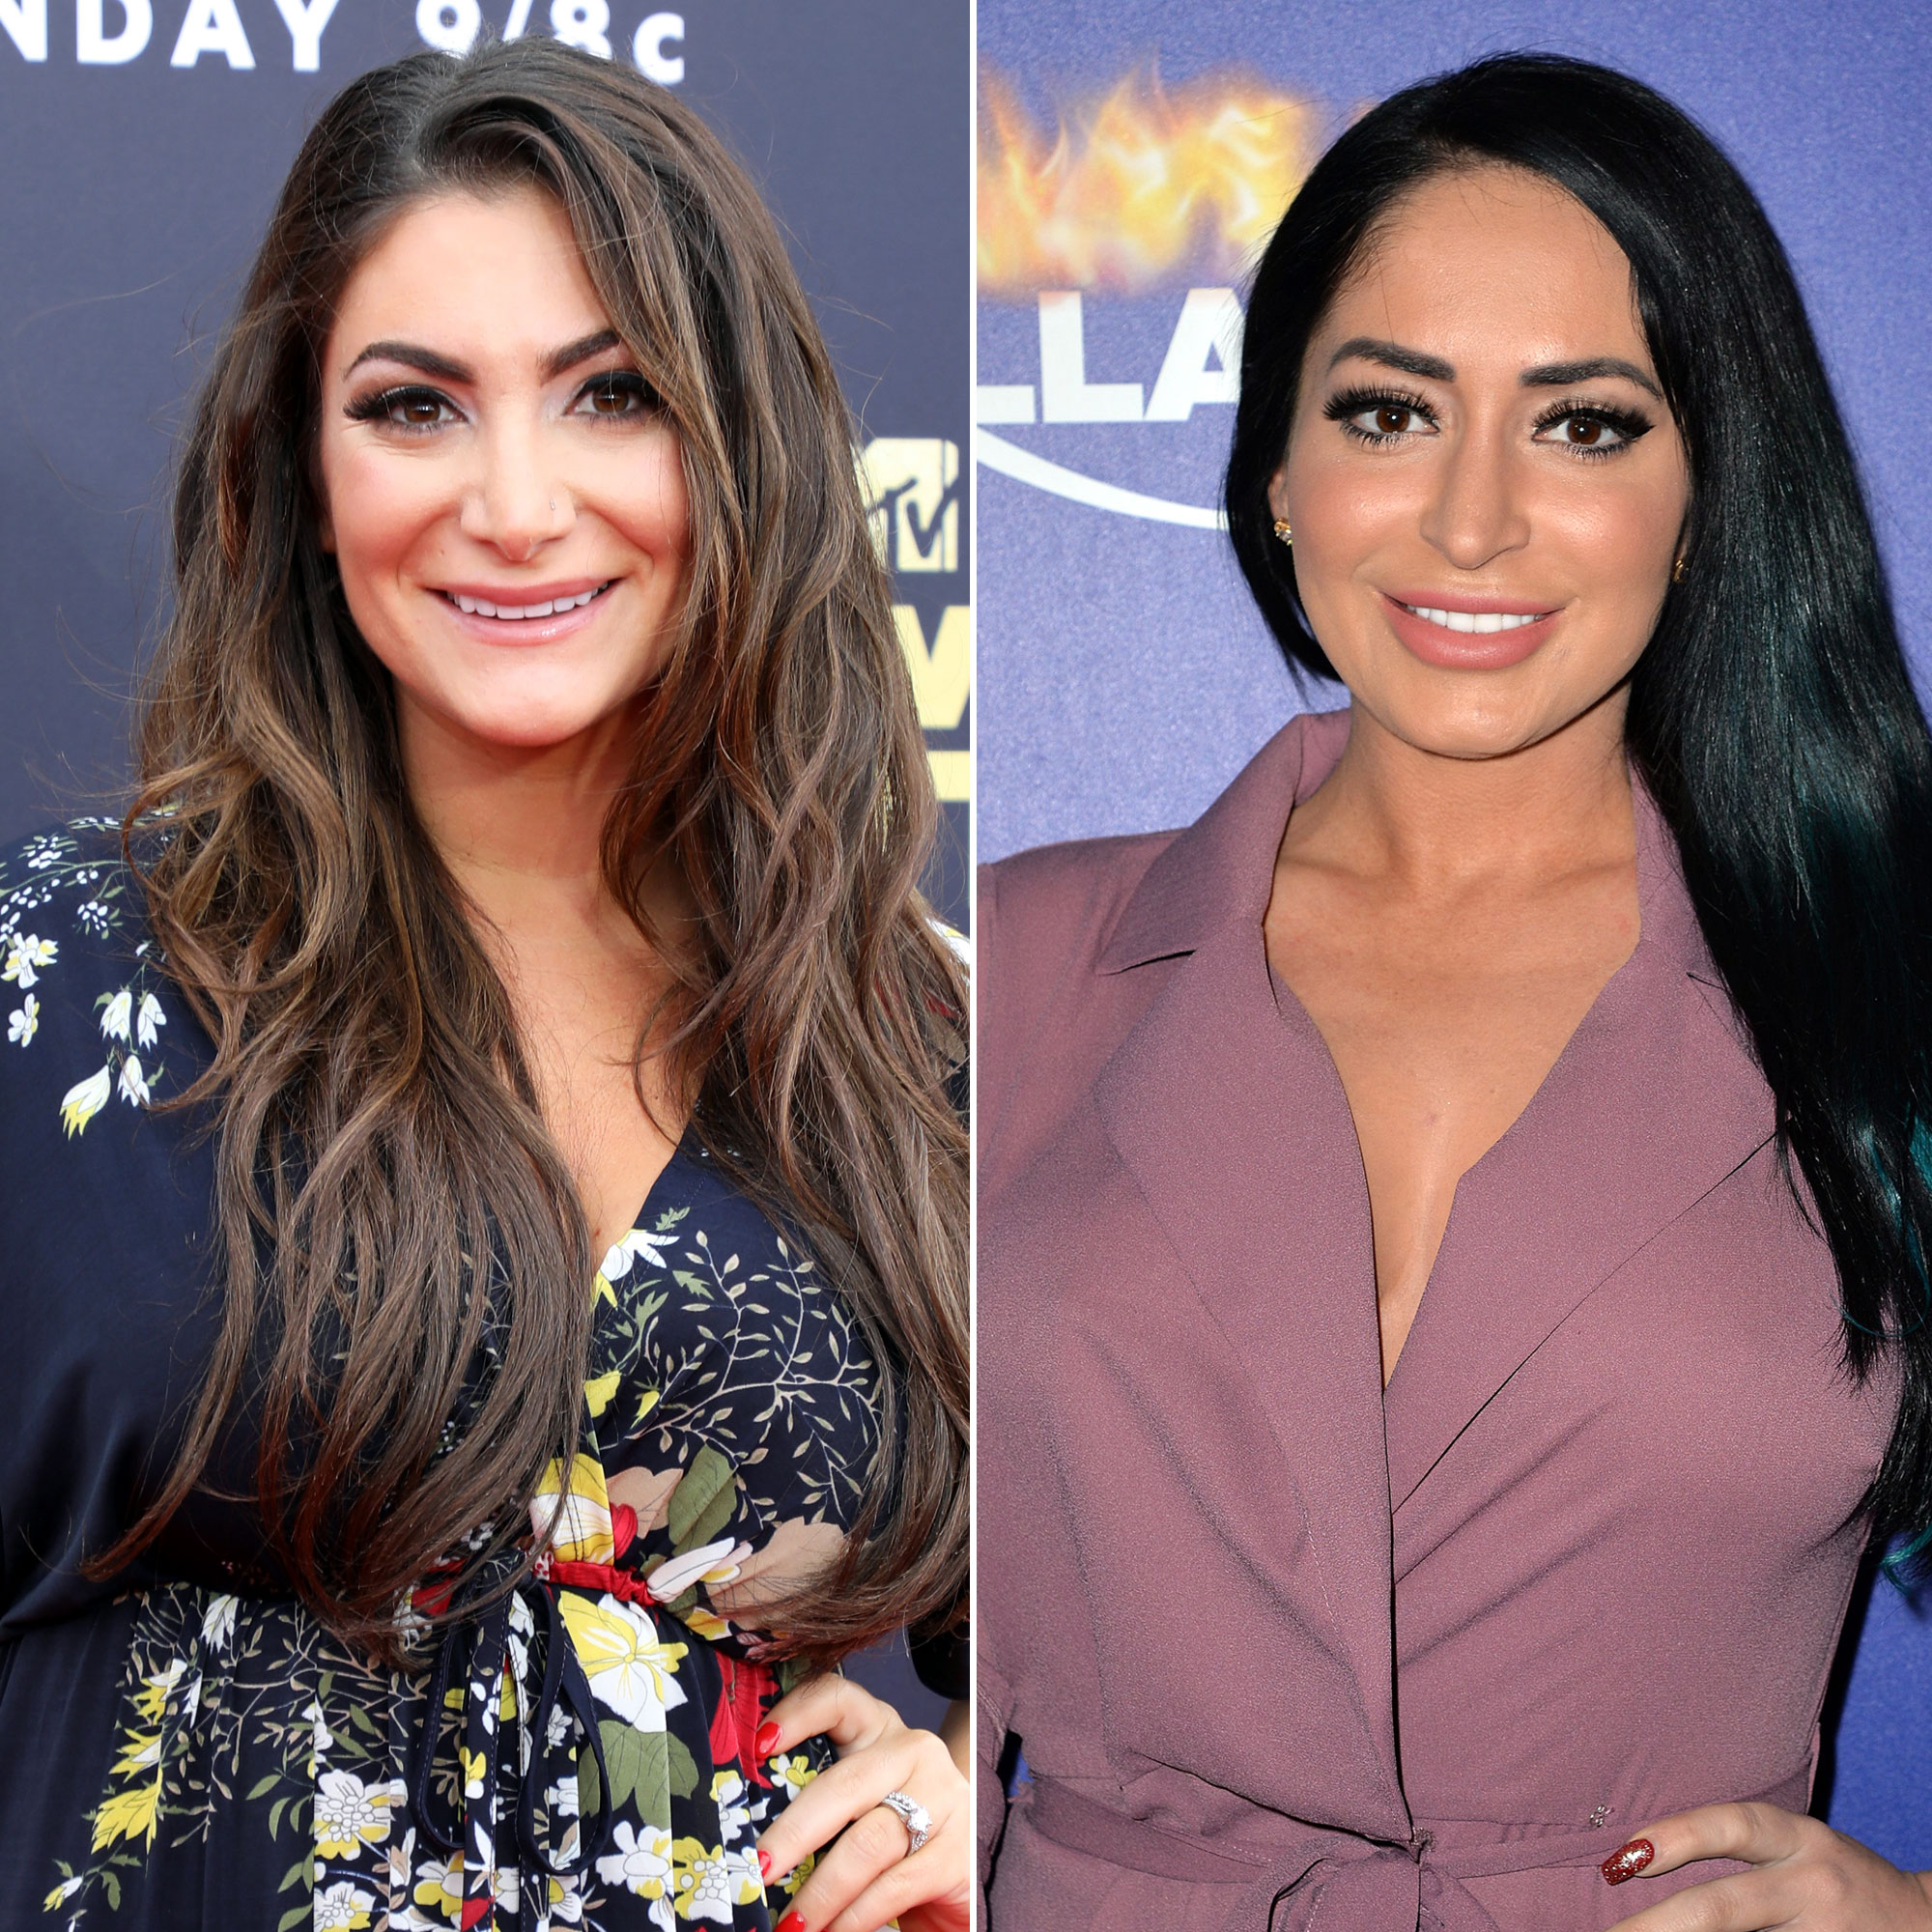 Jersey Shore's Deena Will 'Never' Film With Angelina Again